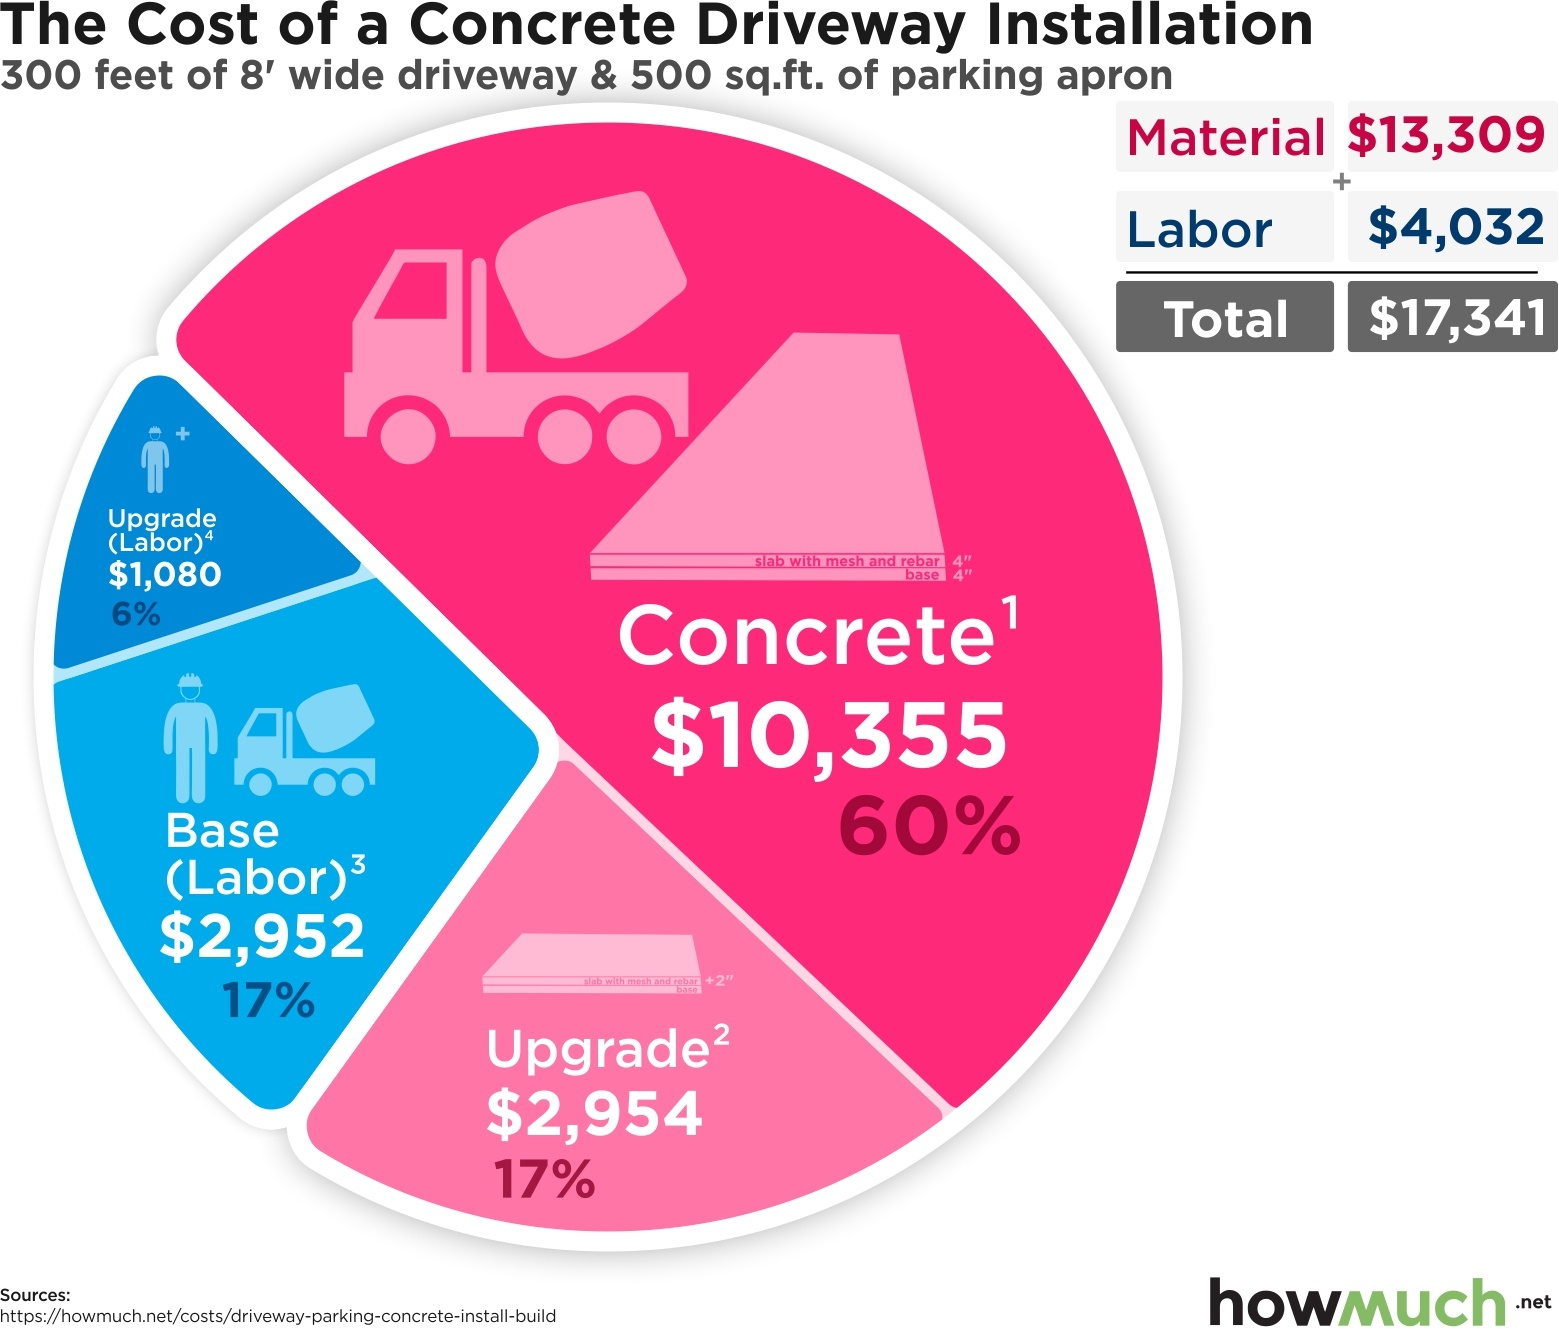 The Cost of a Concrete Driveway Installation